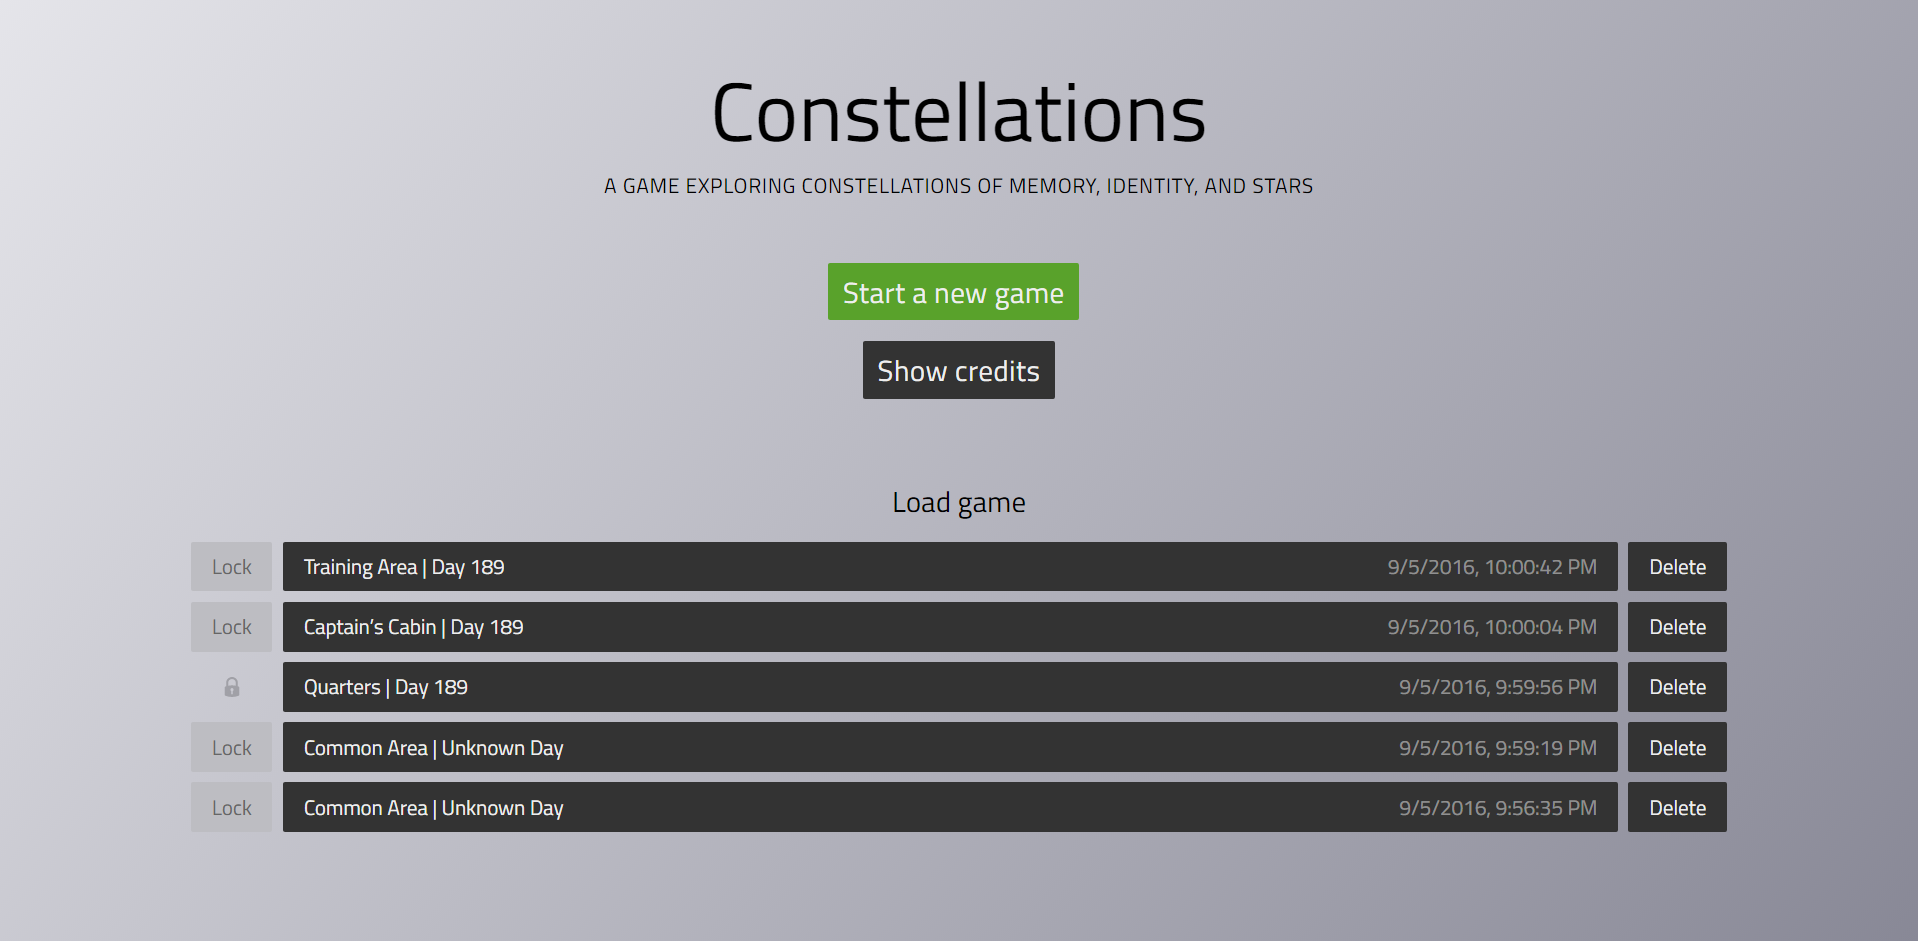 Constellations menu screen